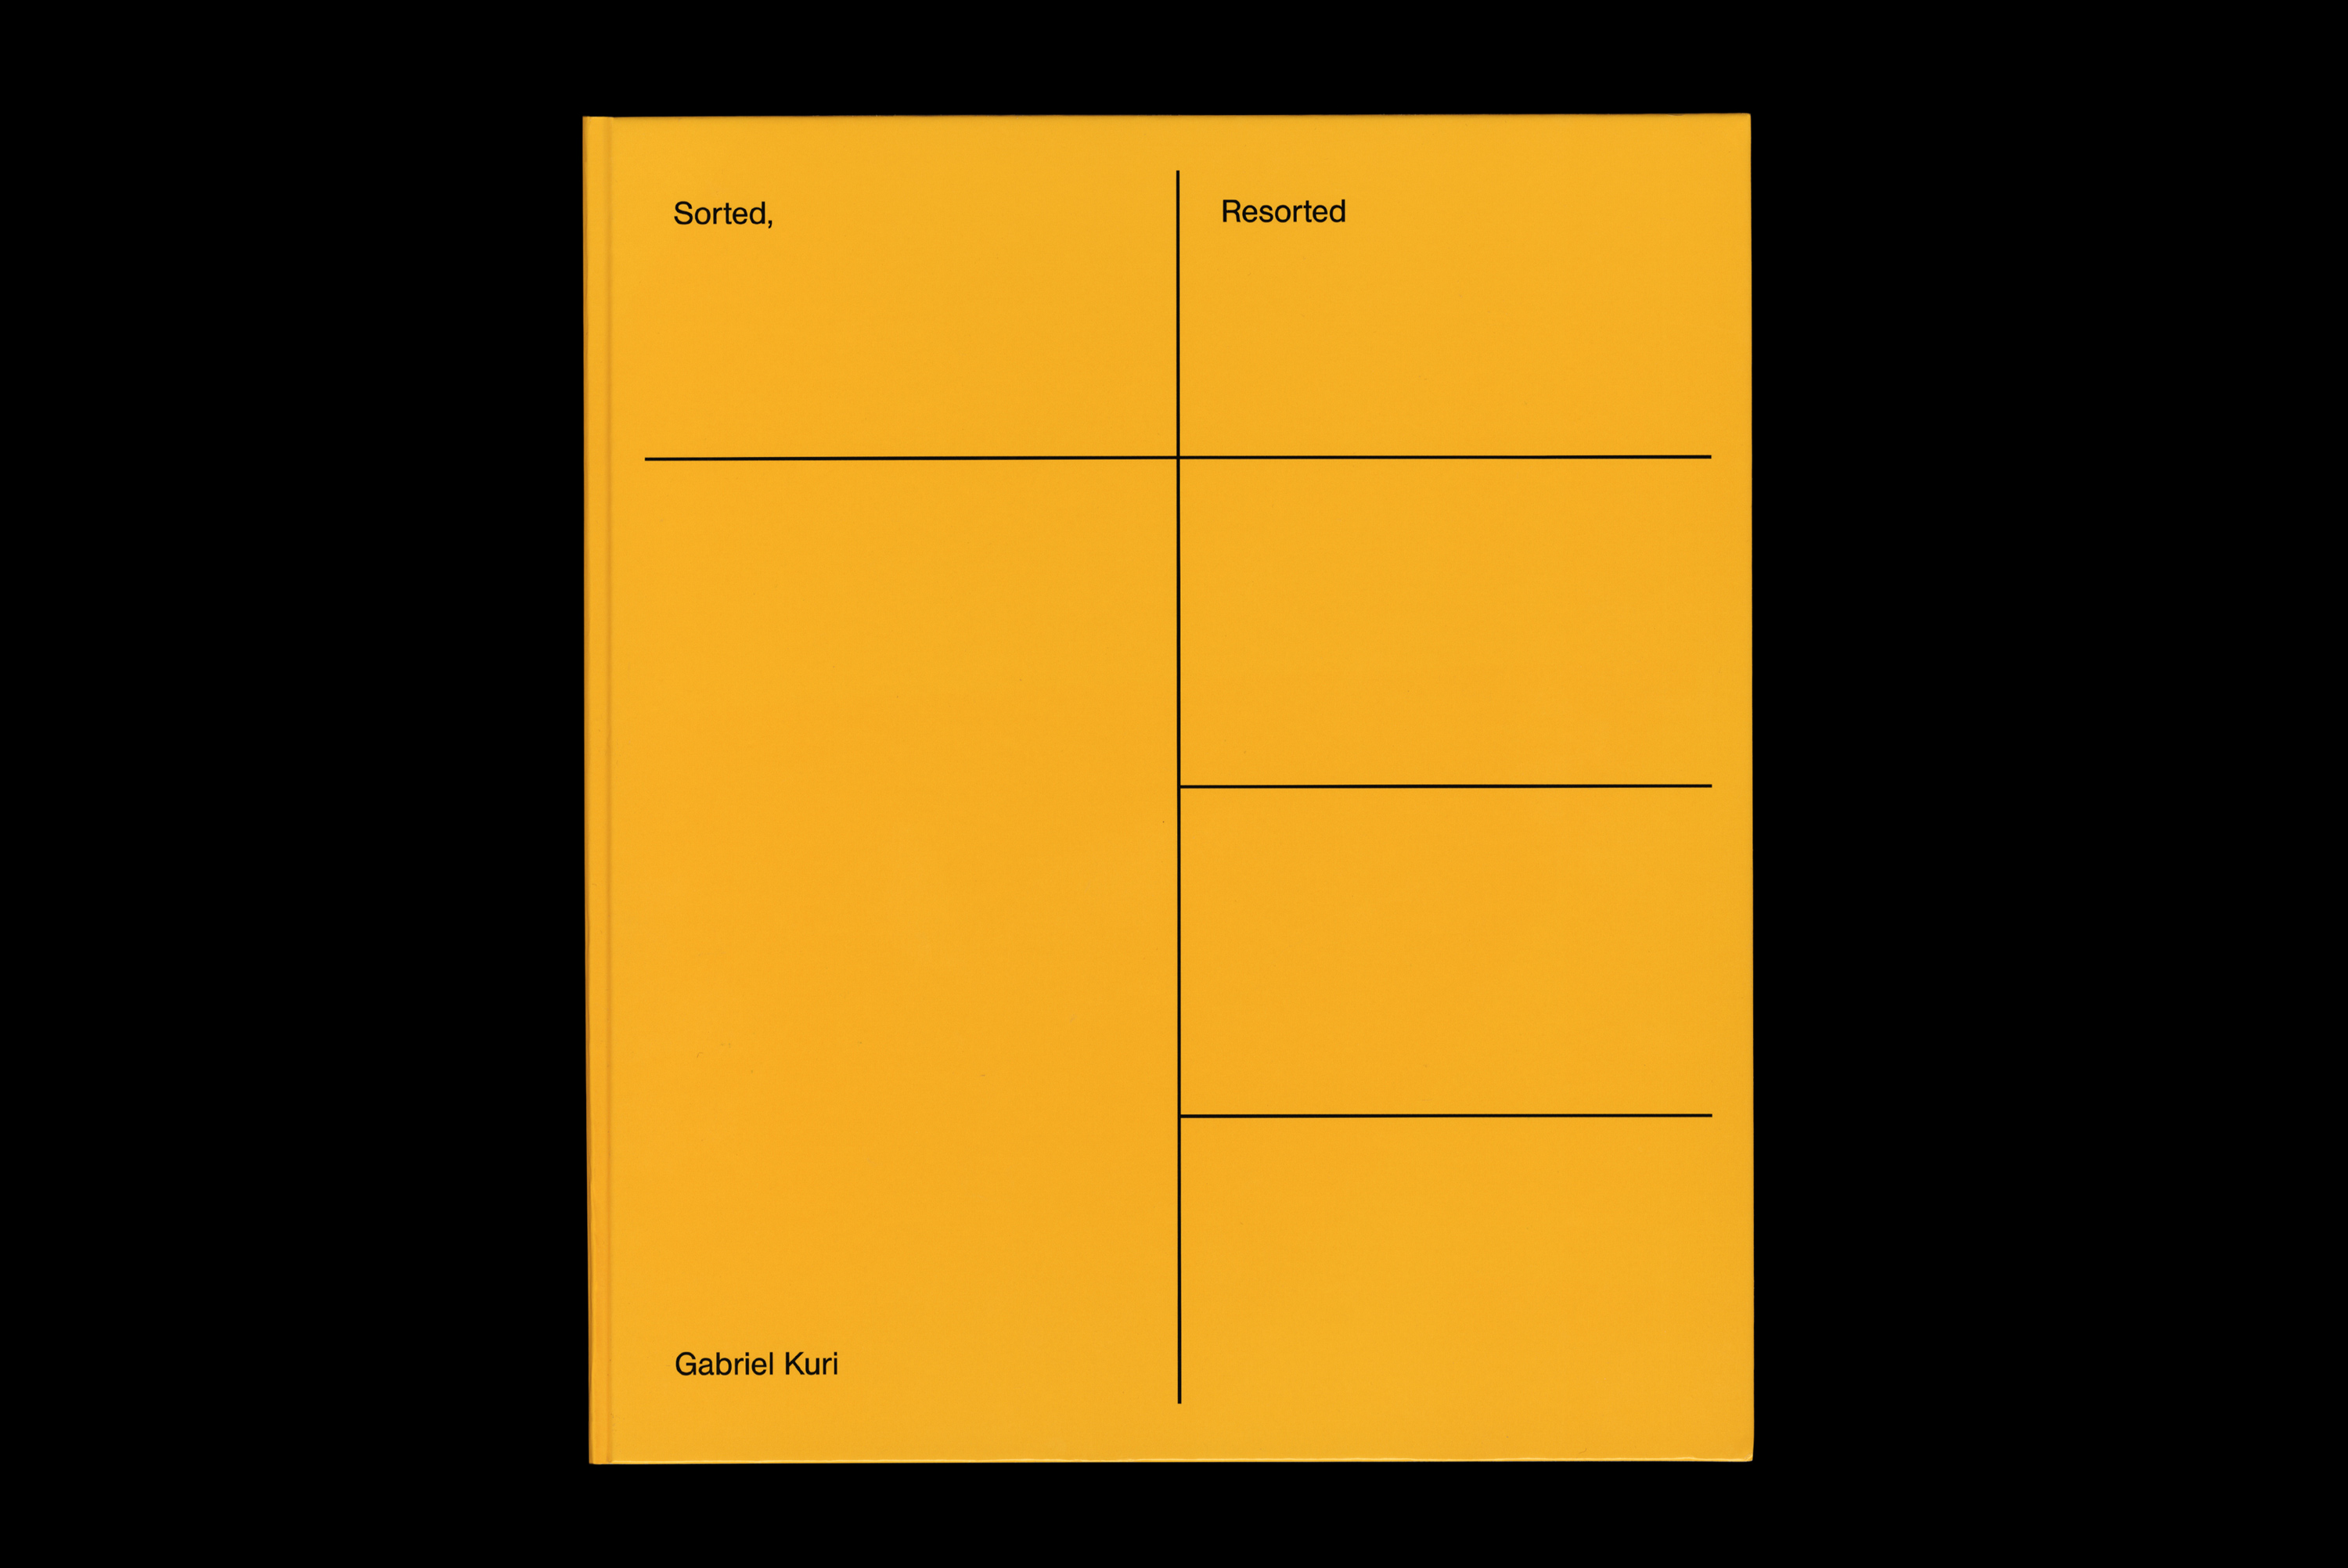 OK-RM (Oliver Knight and Rory McGrath)|Gabriel Kuri: Sorted, Resorted